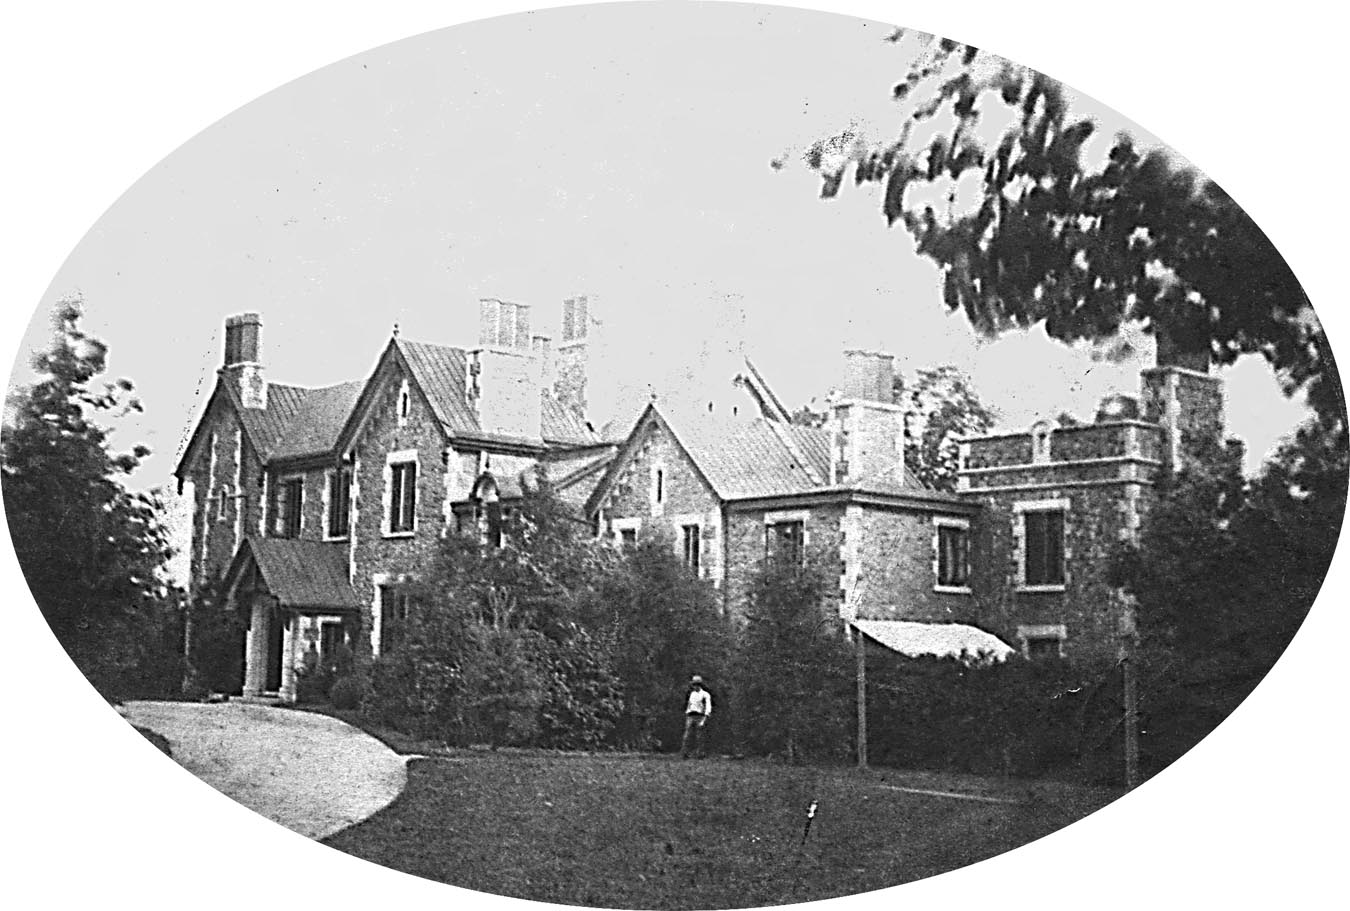 A Photo of the Rockwood From 1861.